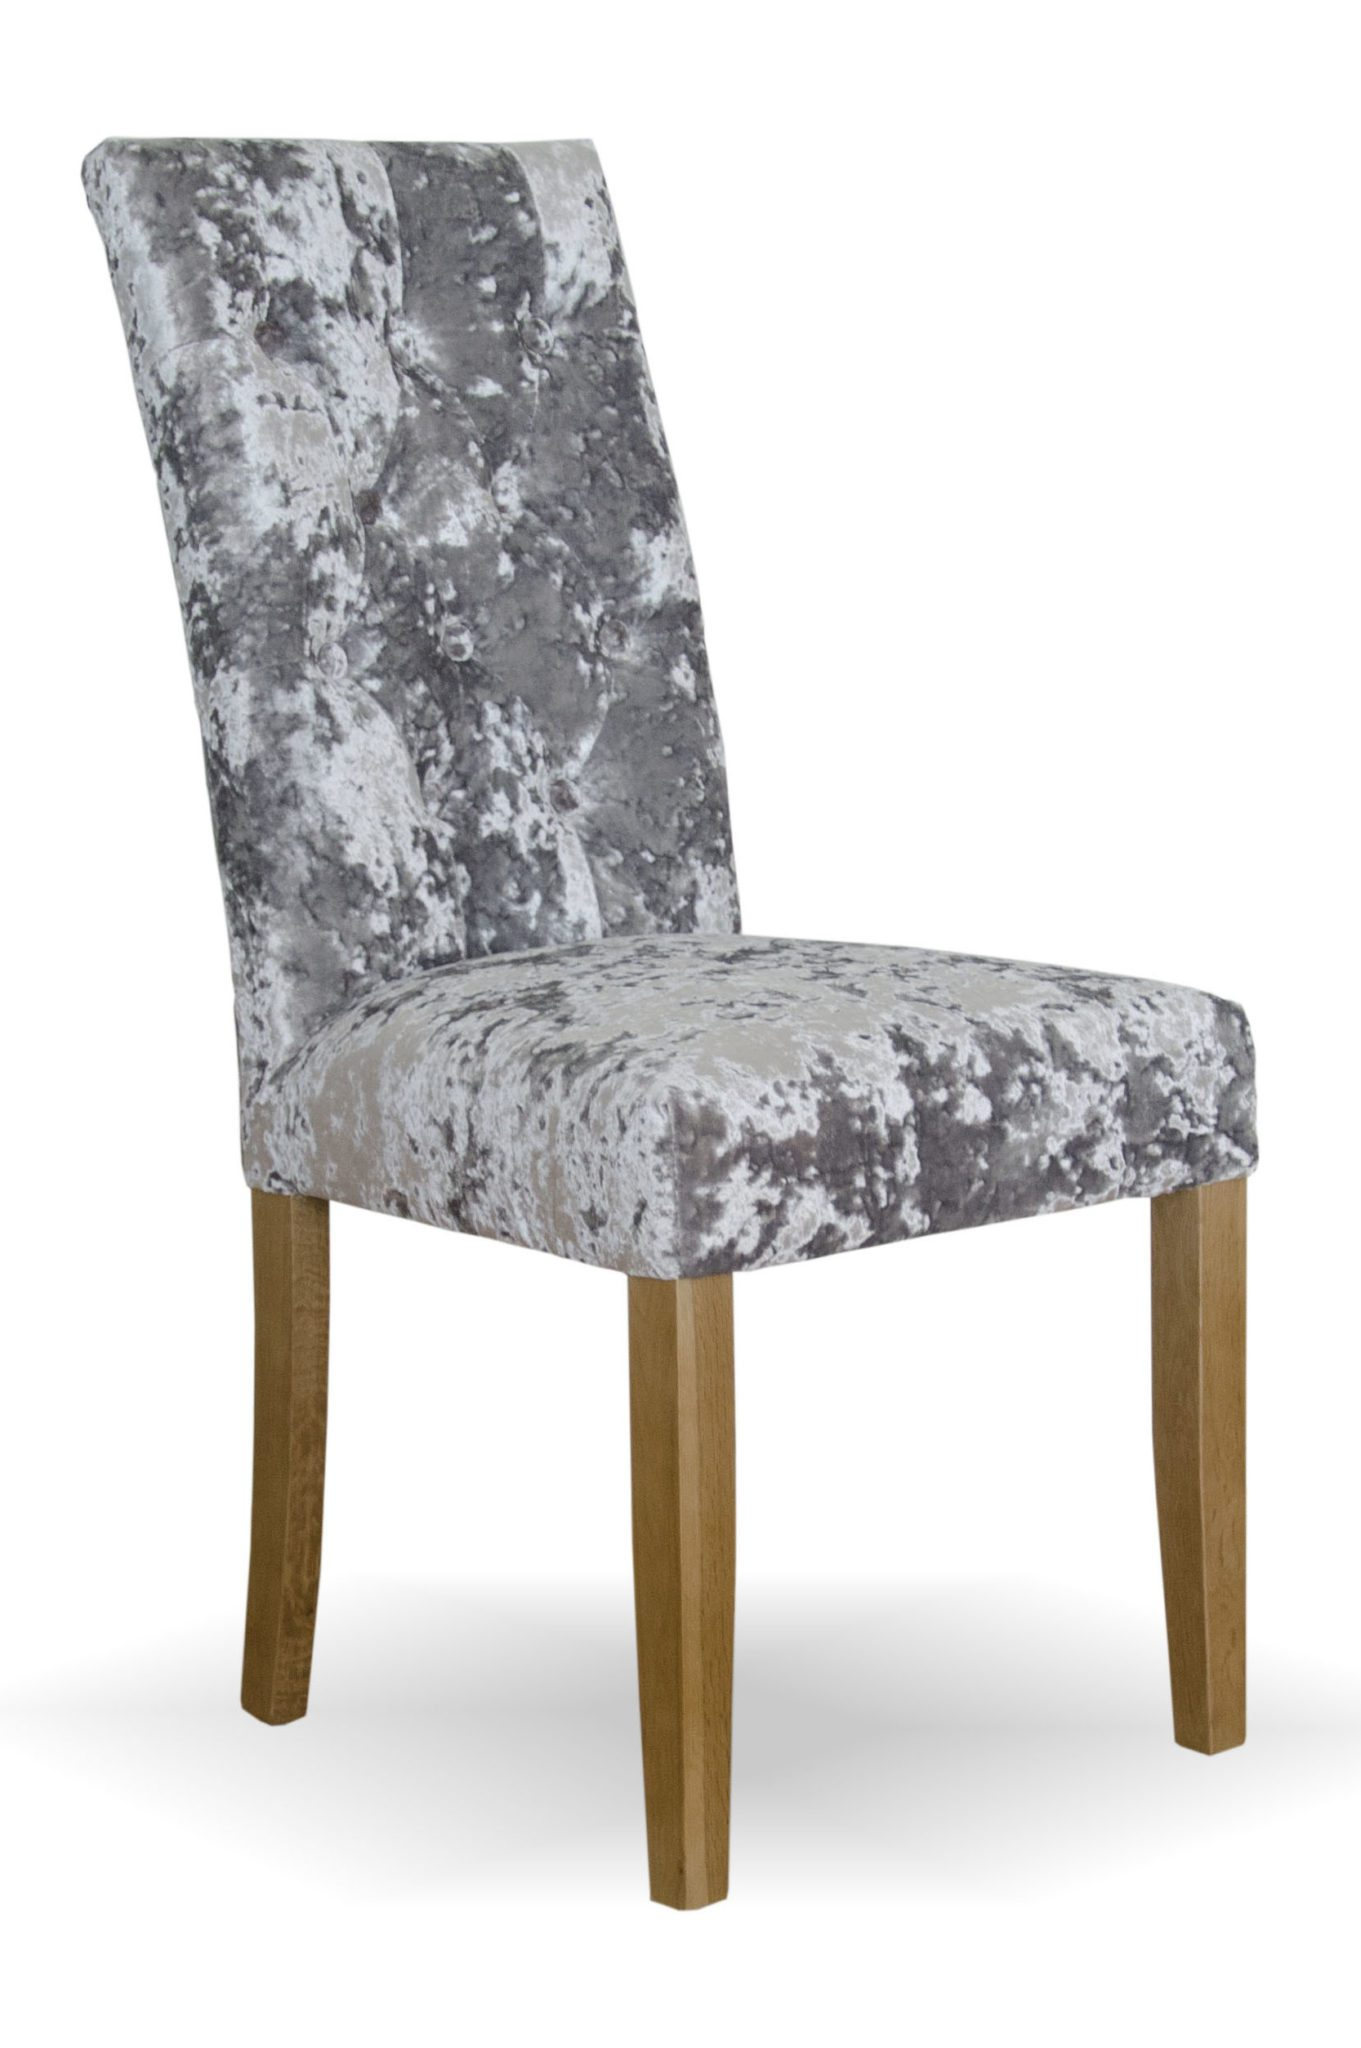 Stockholm chair - deep crushed silver 1